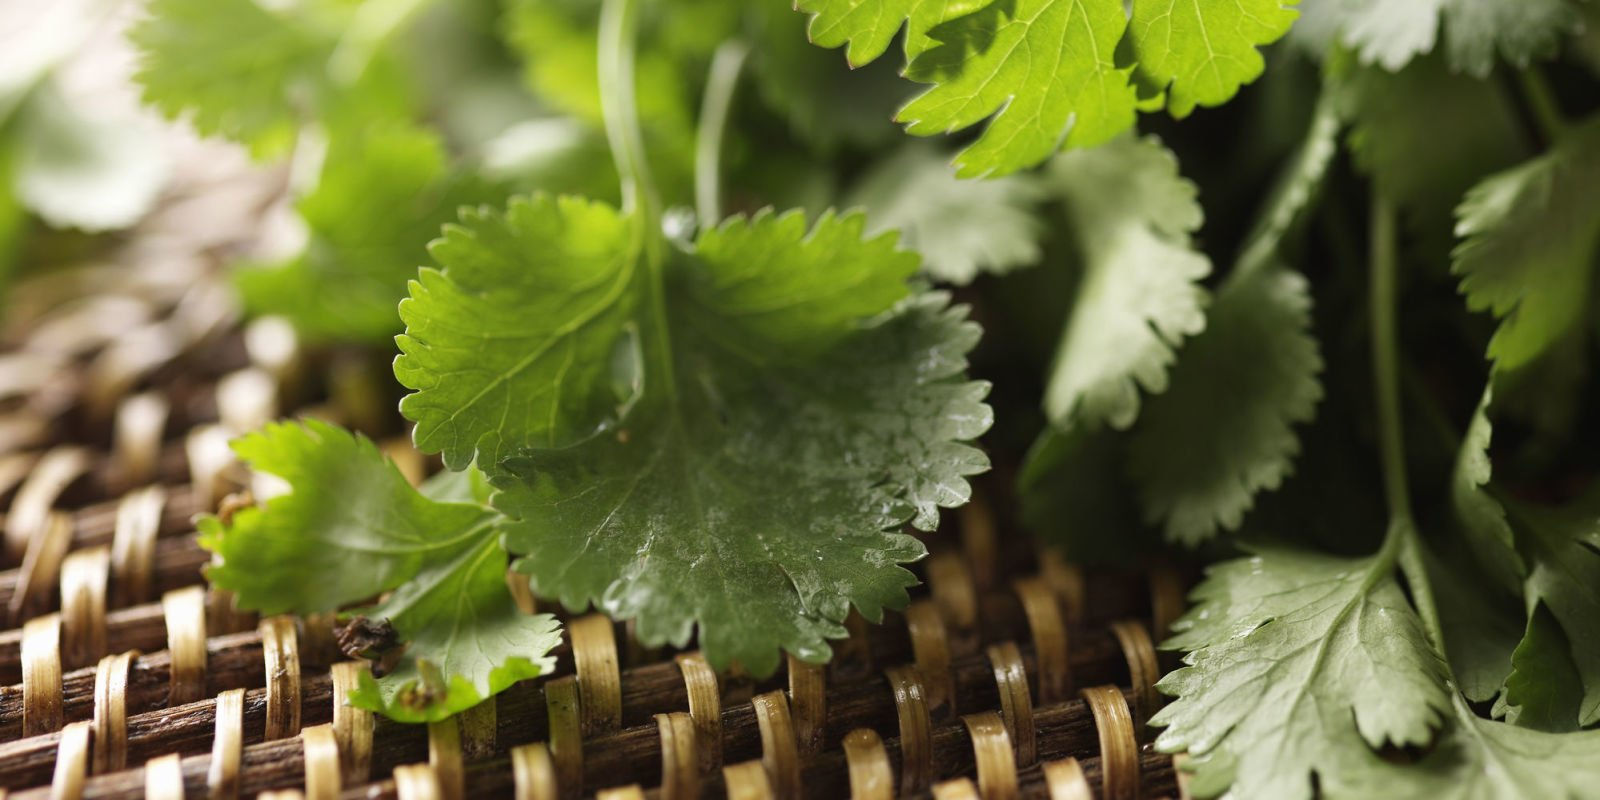 The scientific reason why you can't stand the taste of coriander https://t.co/qfhiWJYJOz https://t.co/mFF7Mkgqey